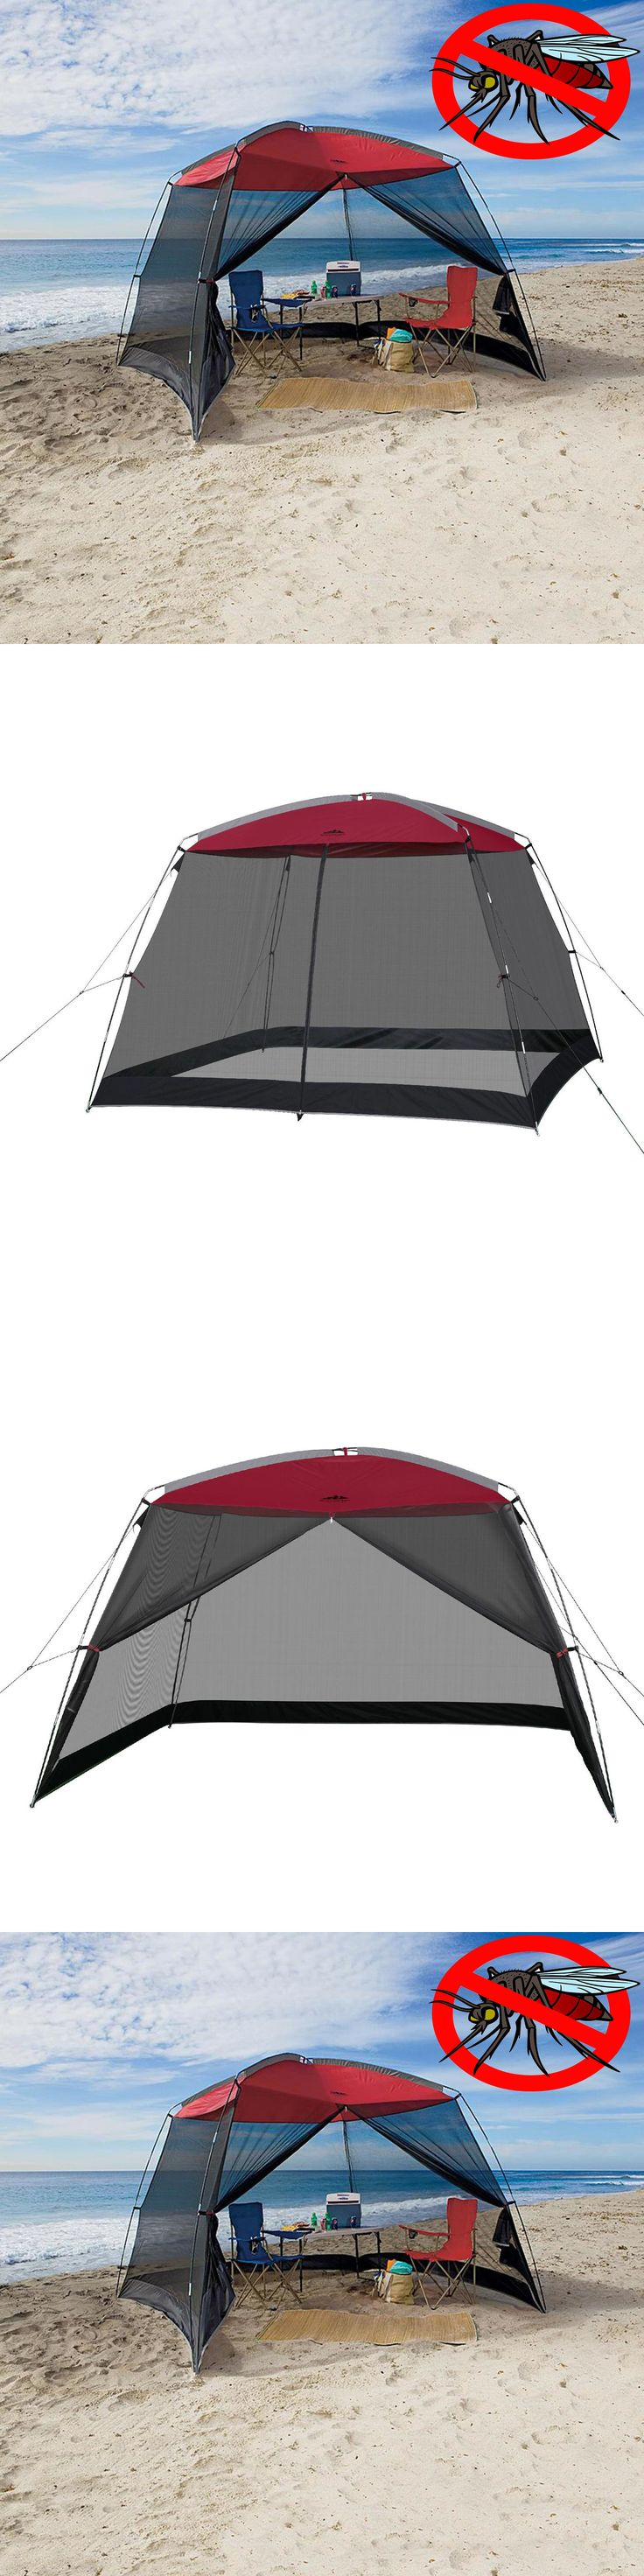 Canopies and Shelters 179011: Beach Tent Shelter Large Sun Shade Canopy 10 X 10 Ft. Summer Camping Roof Mesh -> BUY IT NOW ONLY: $59.99 on eBay!